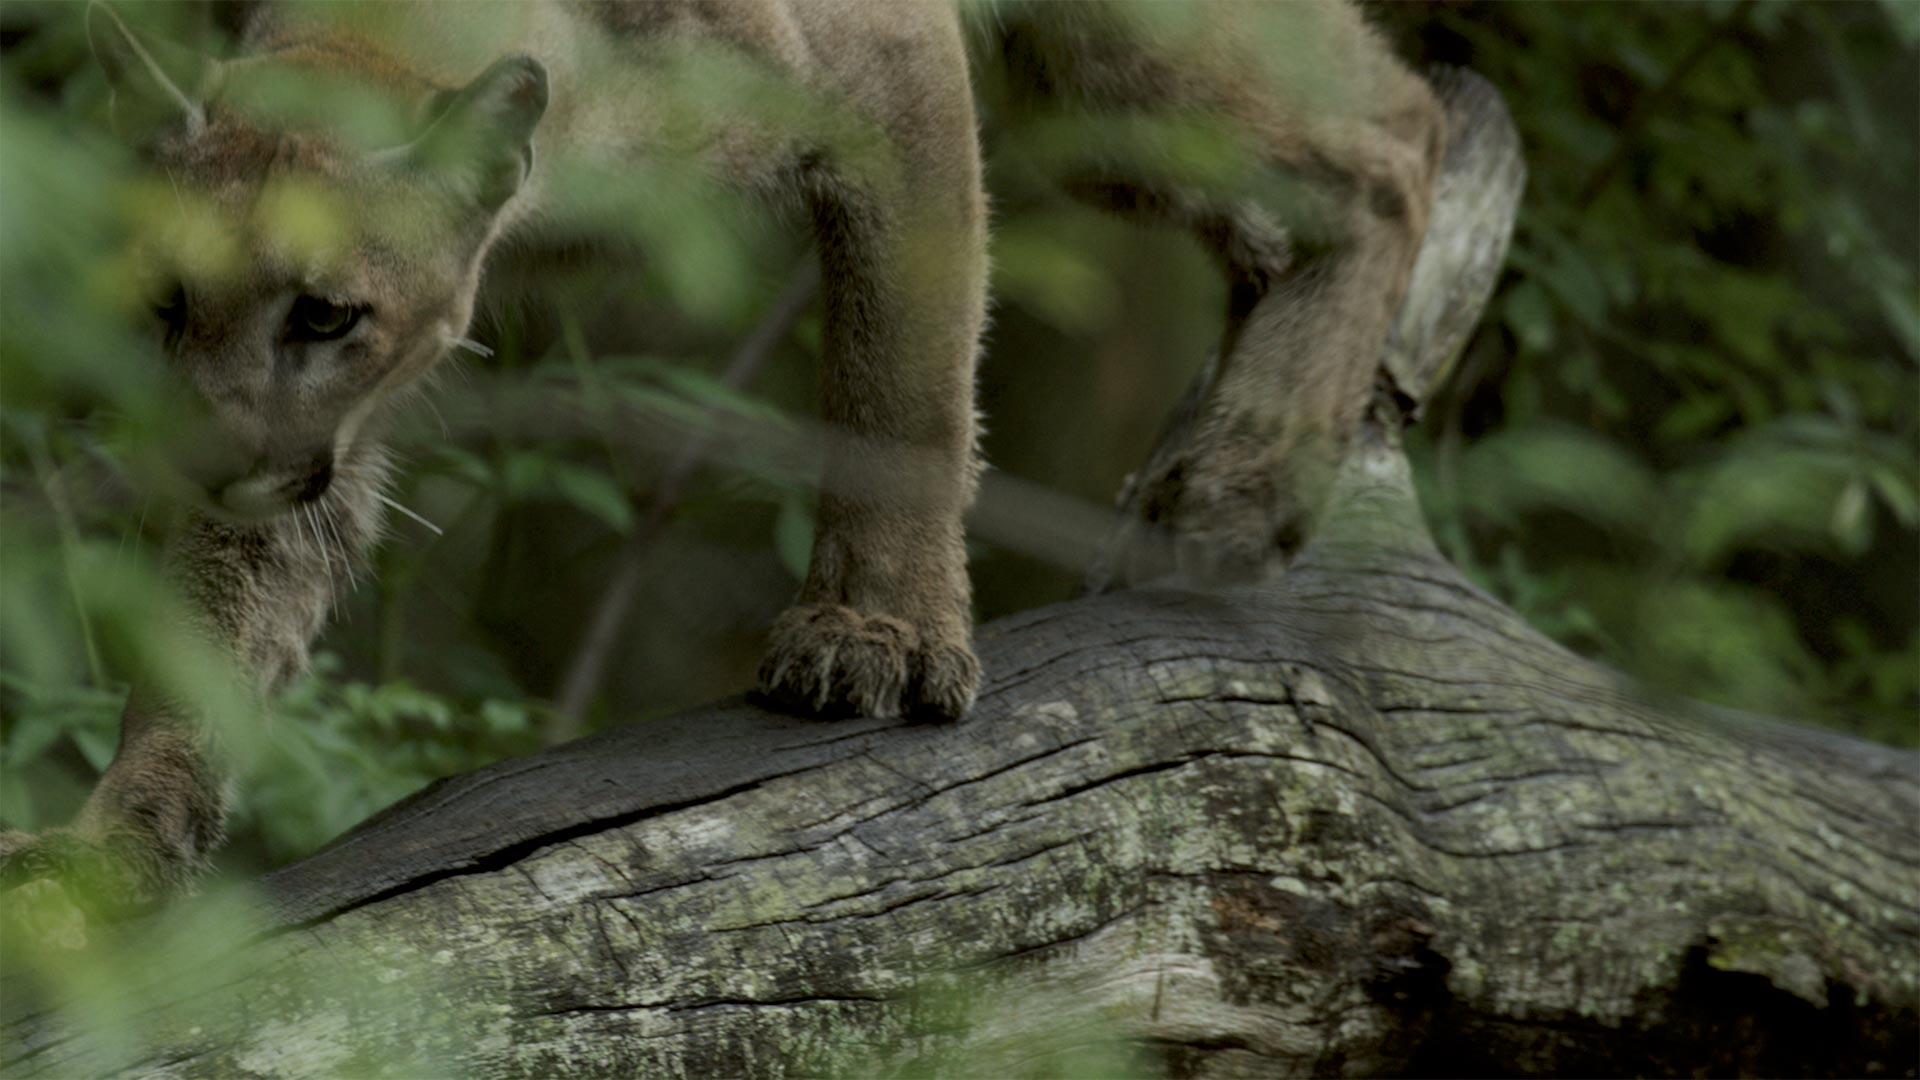 Florida Panther balancing on a log in the forest